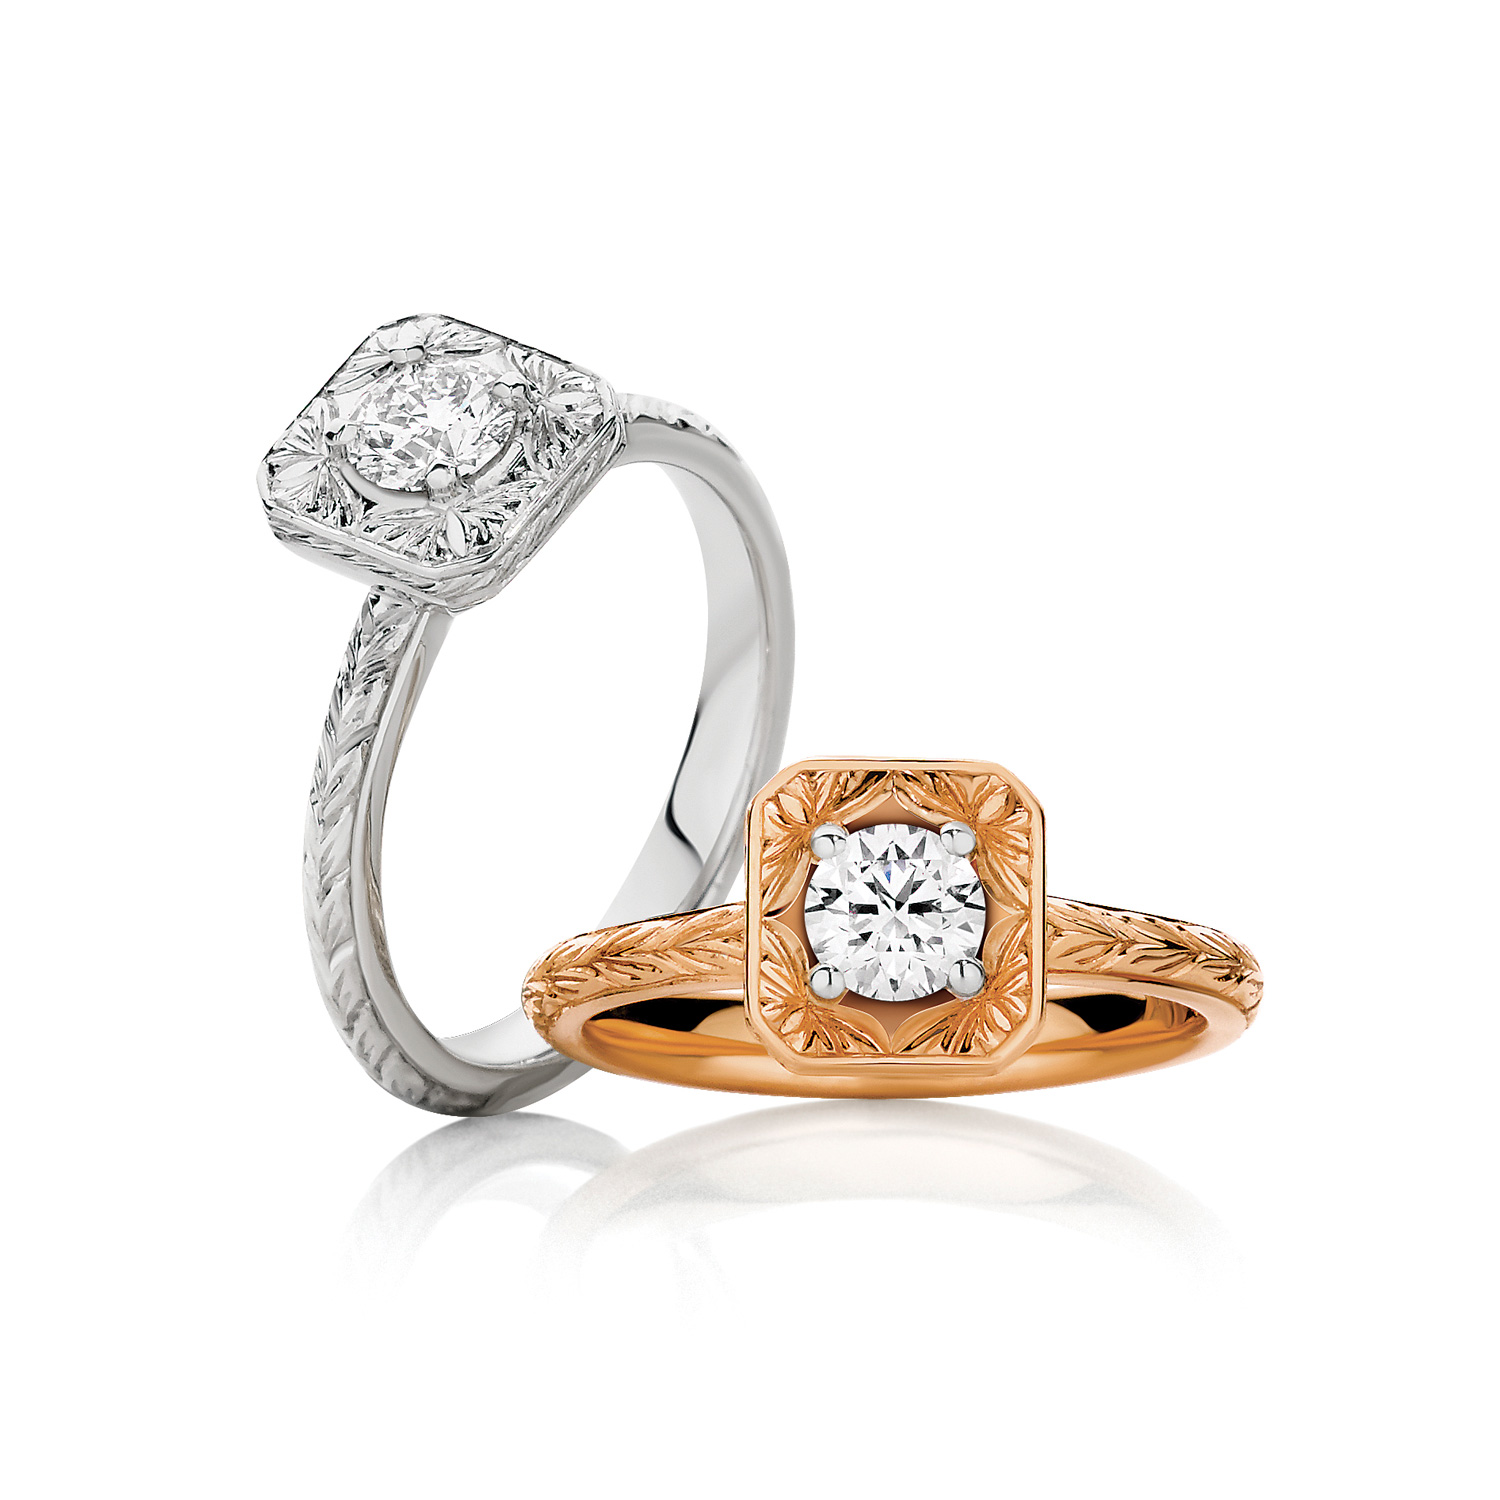 Lovelight Diamond Engagement Ring